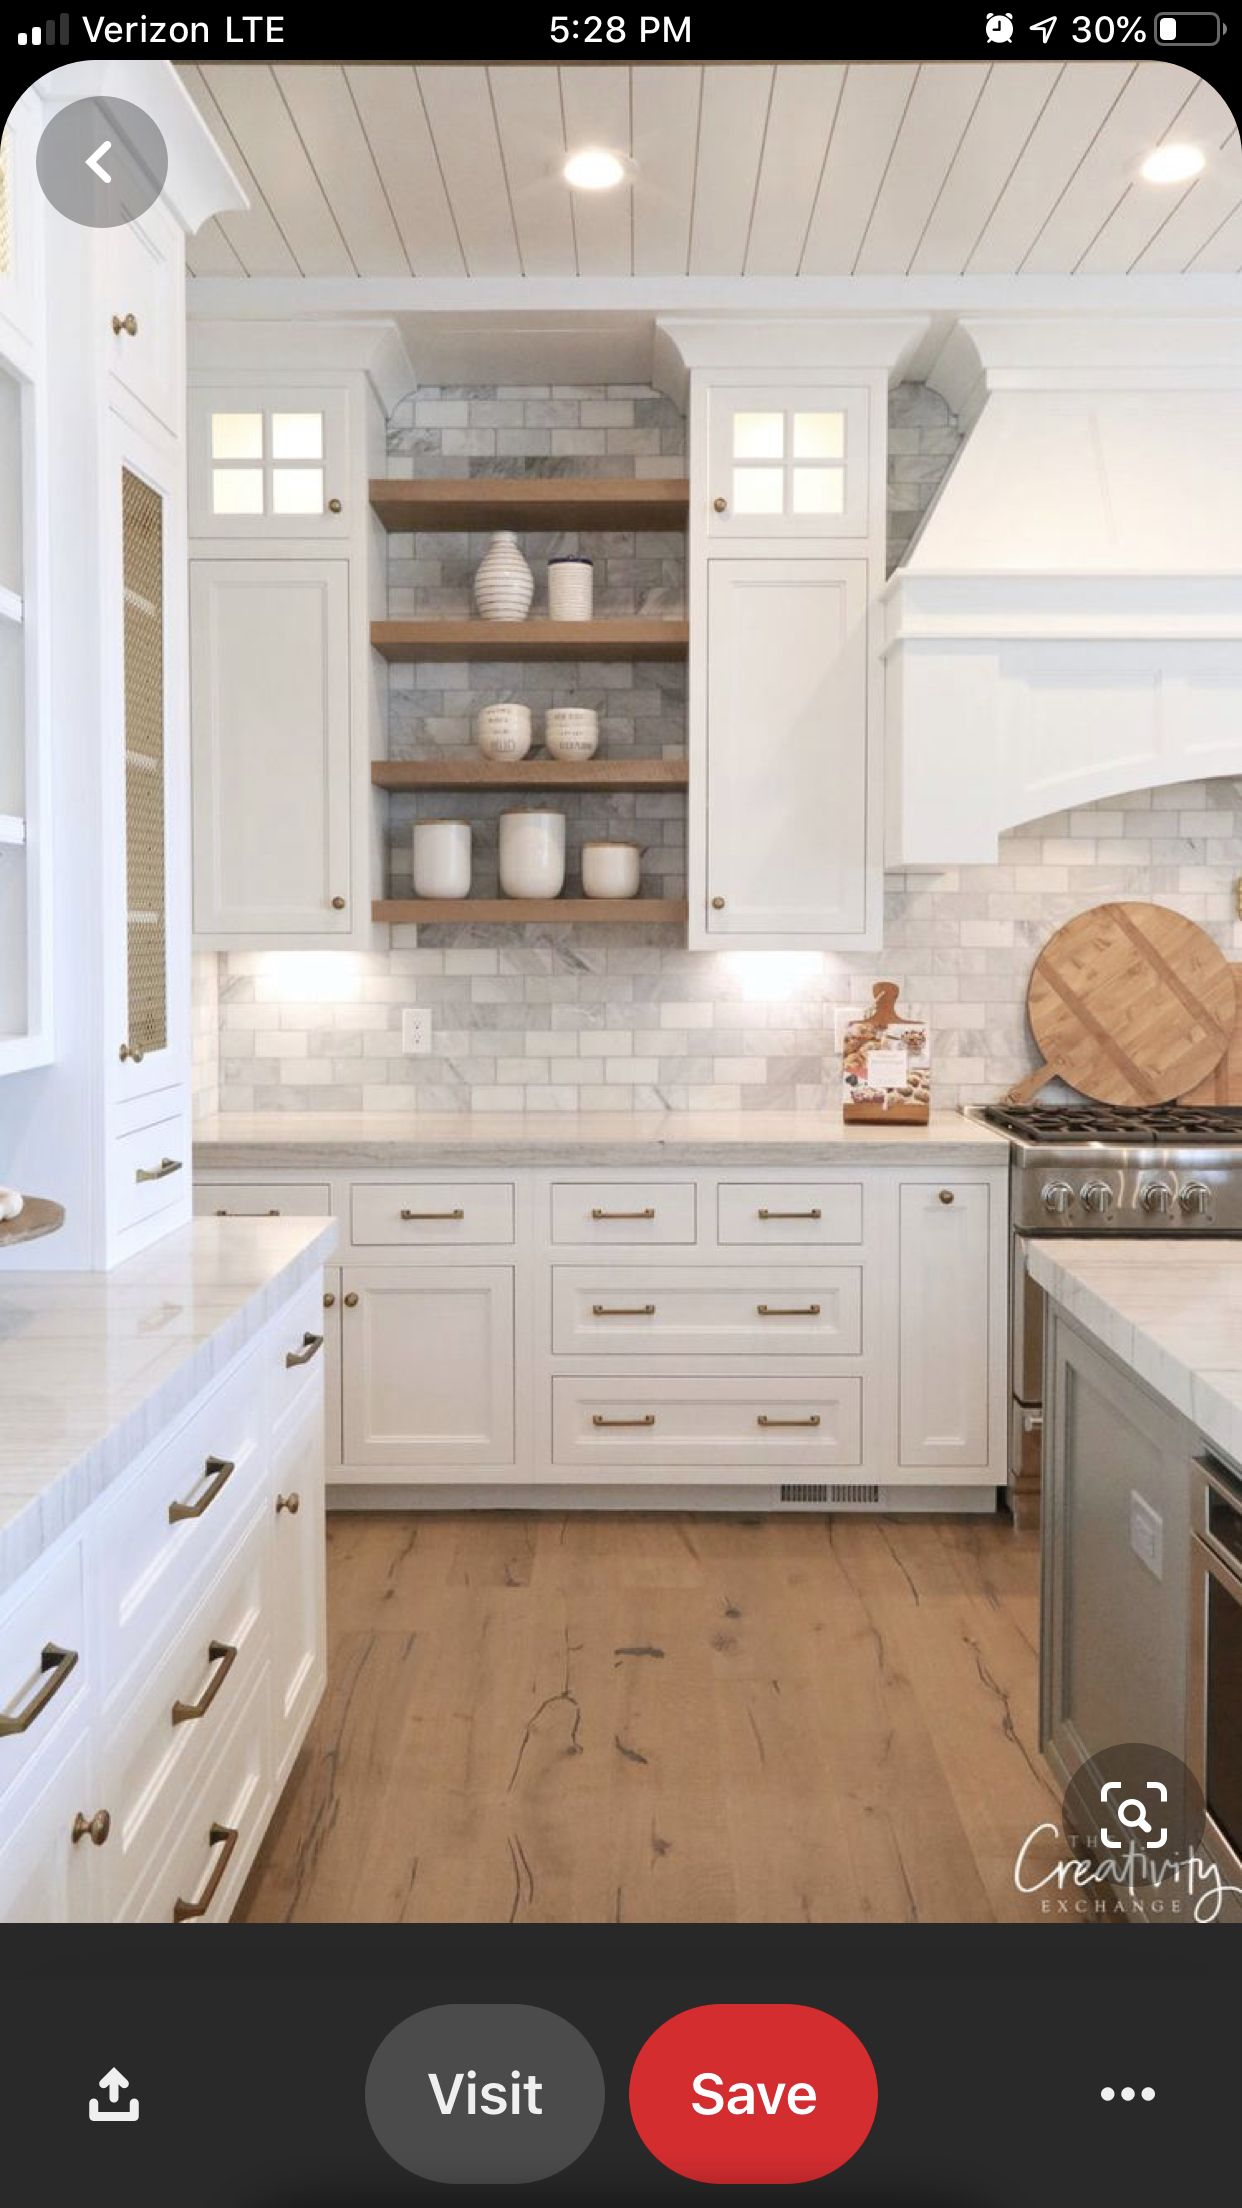 Pin By Jaworski Painting On Cabinet Painting And Refinishing Painting Cabinets Painting Kitchen Cabinets Kitchen Cabinets